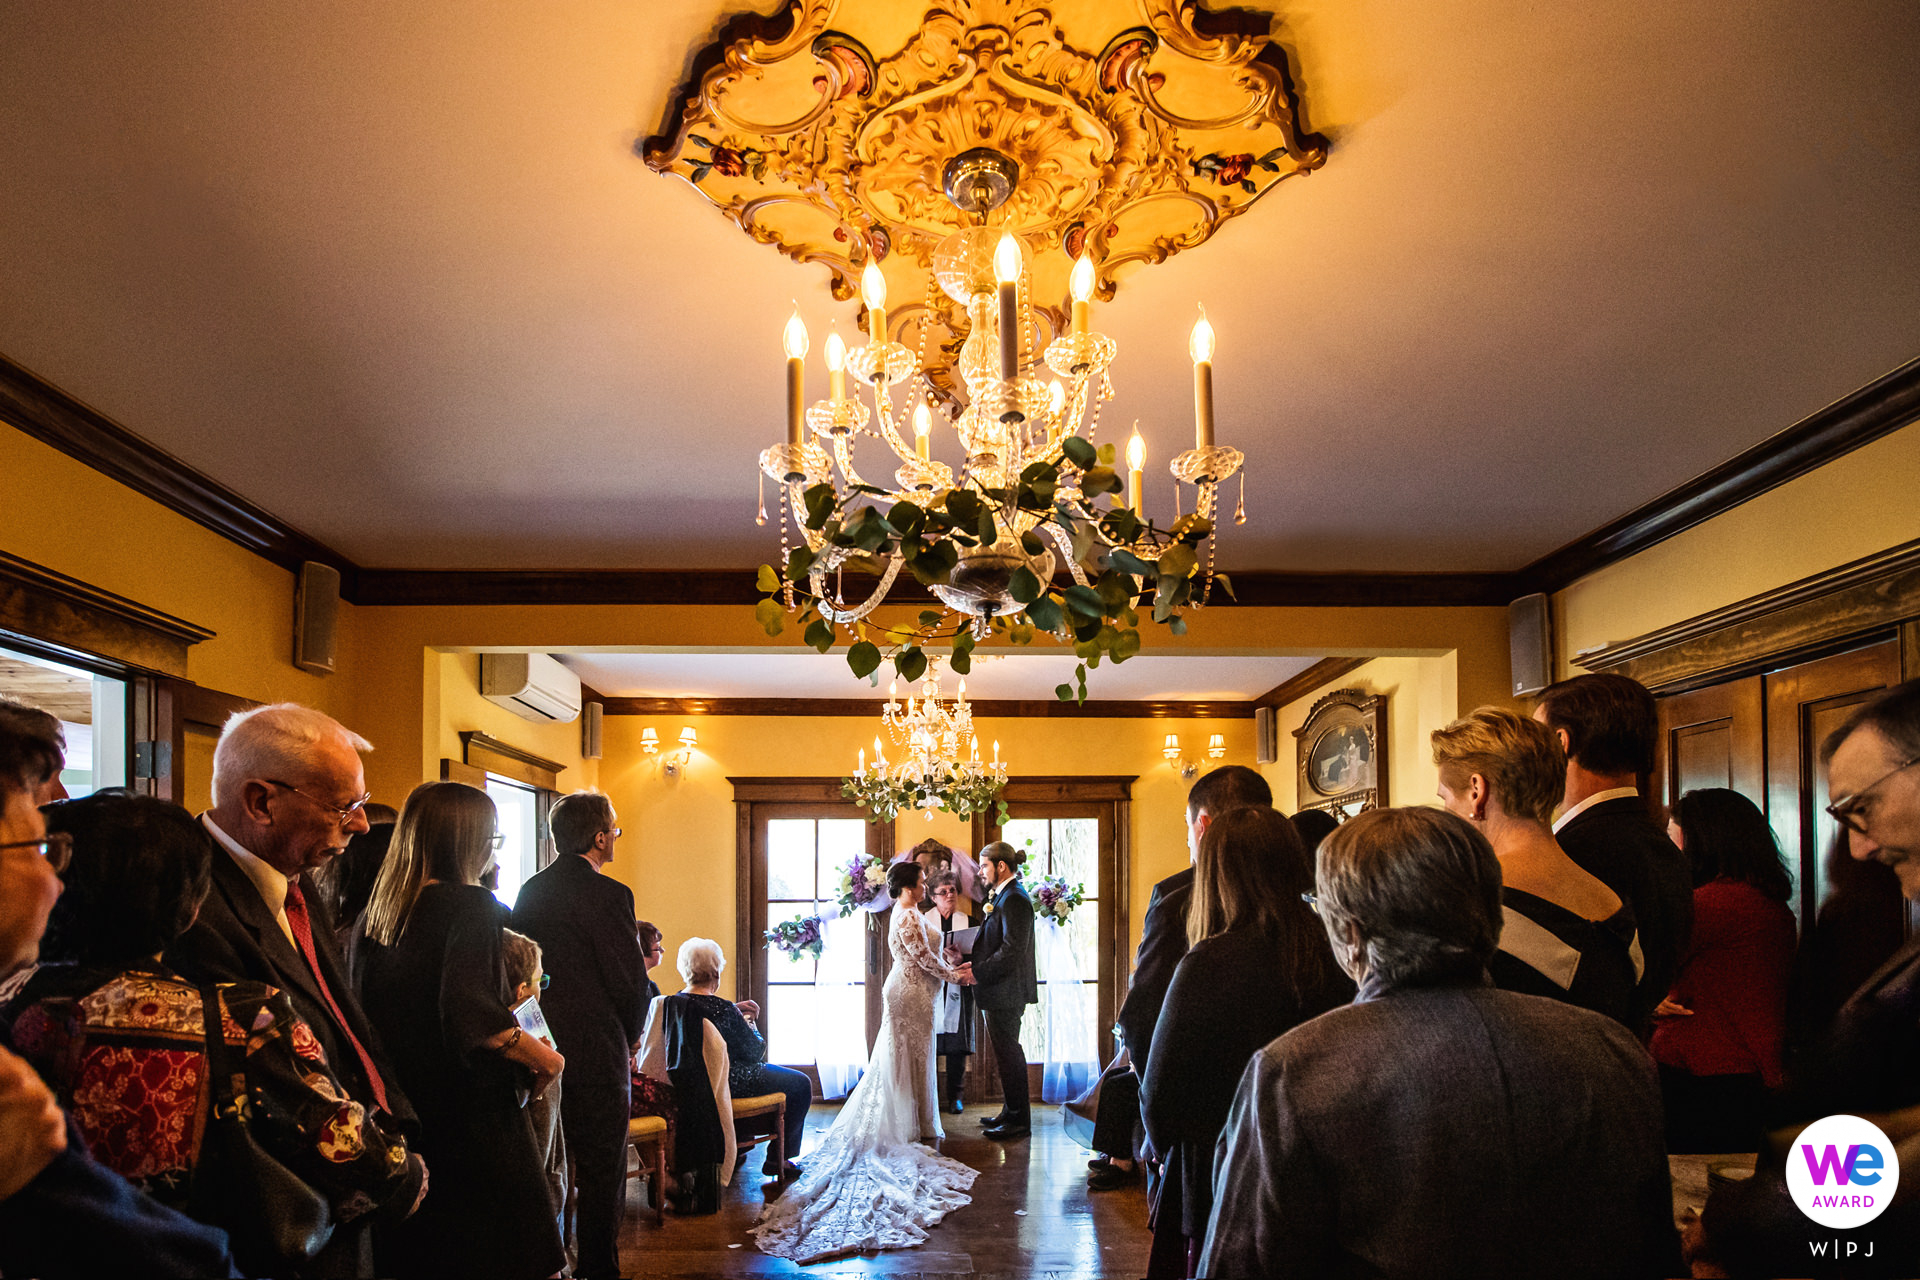 Wedding Photo from Gables, Beach Haven NJ - Jersey Shore | Guests stand around the couple during their intimate wedding ceremony